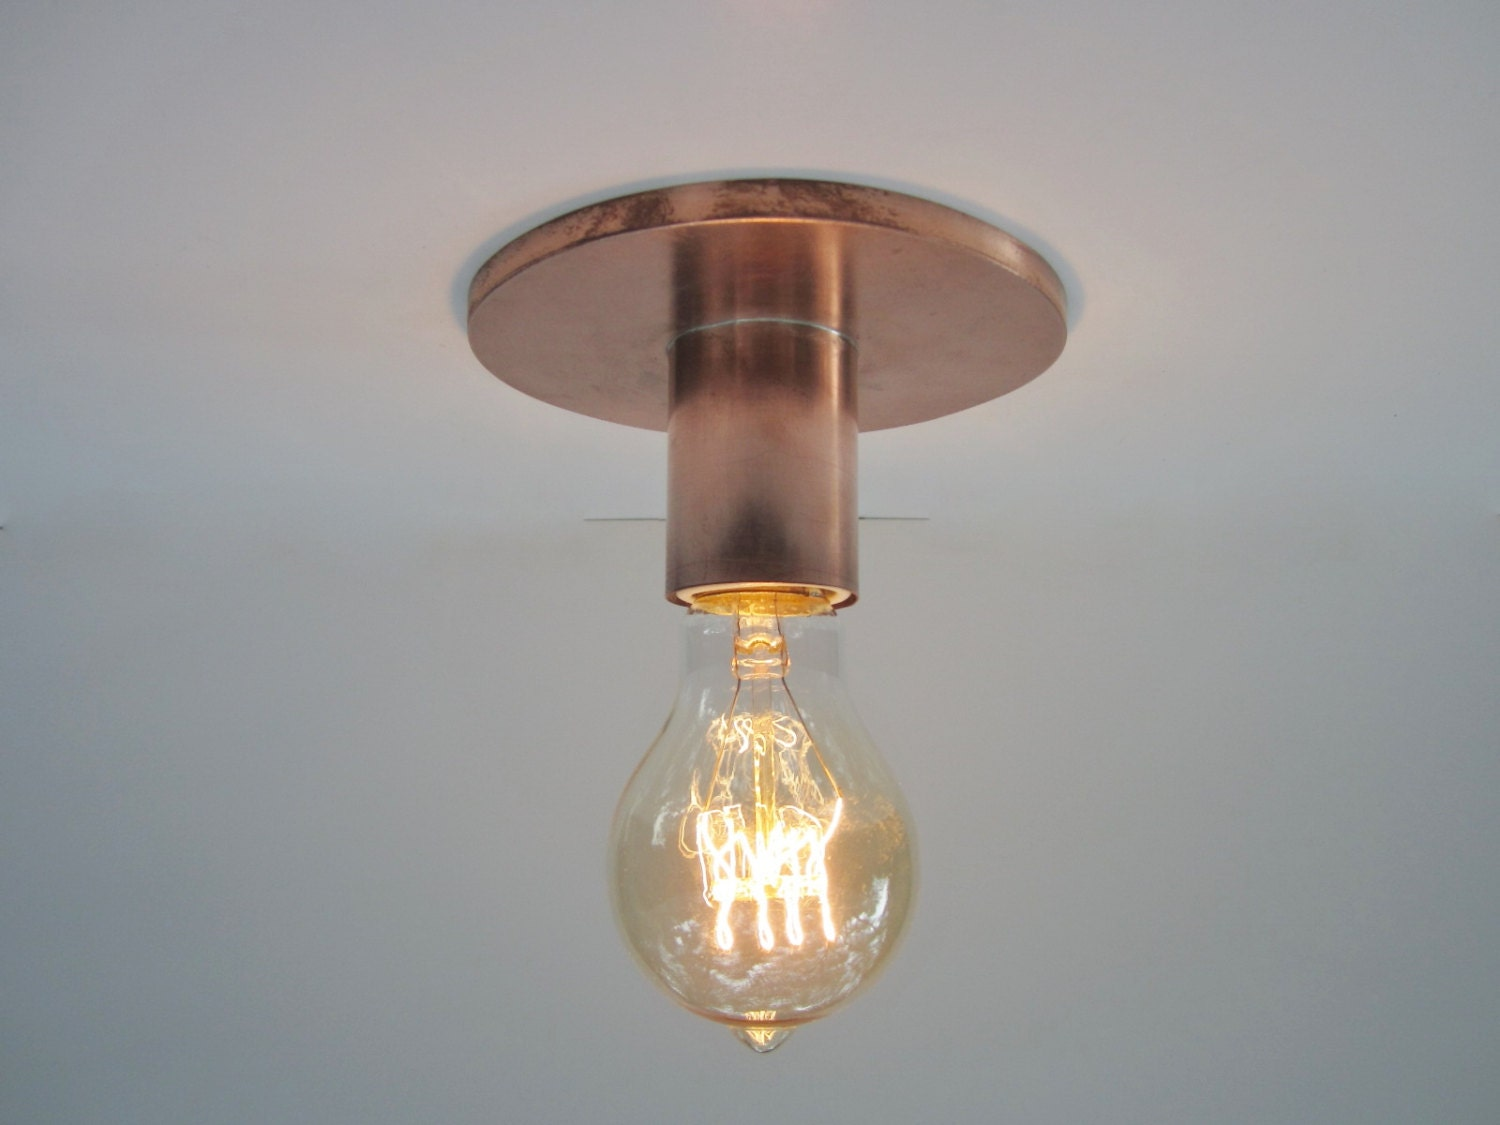 Flush mount ceiling light or wall sconce industrial lighting zoom aloadofball Gallery